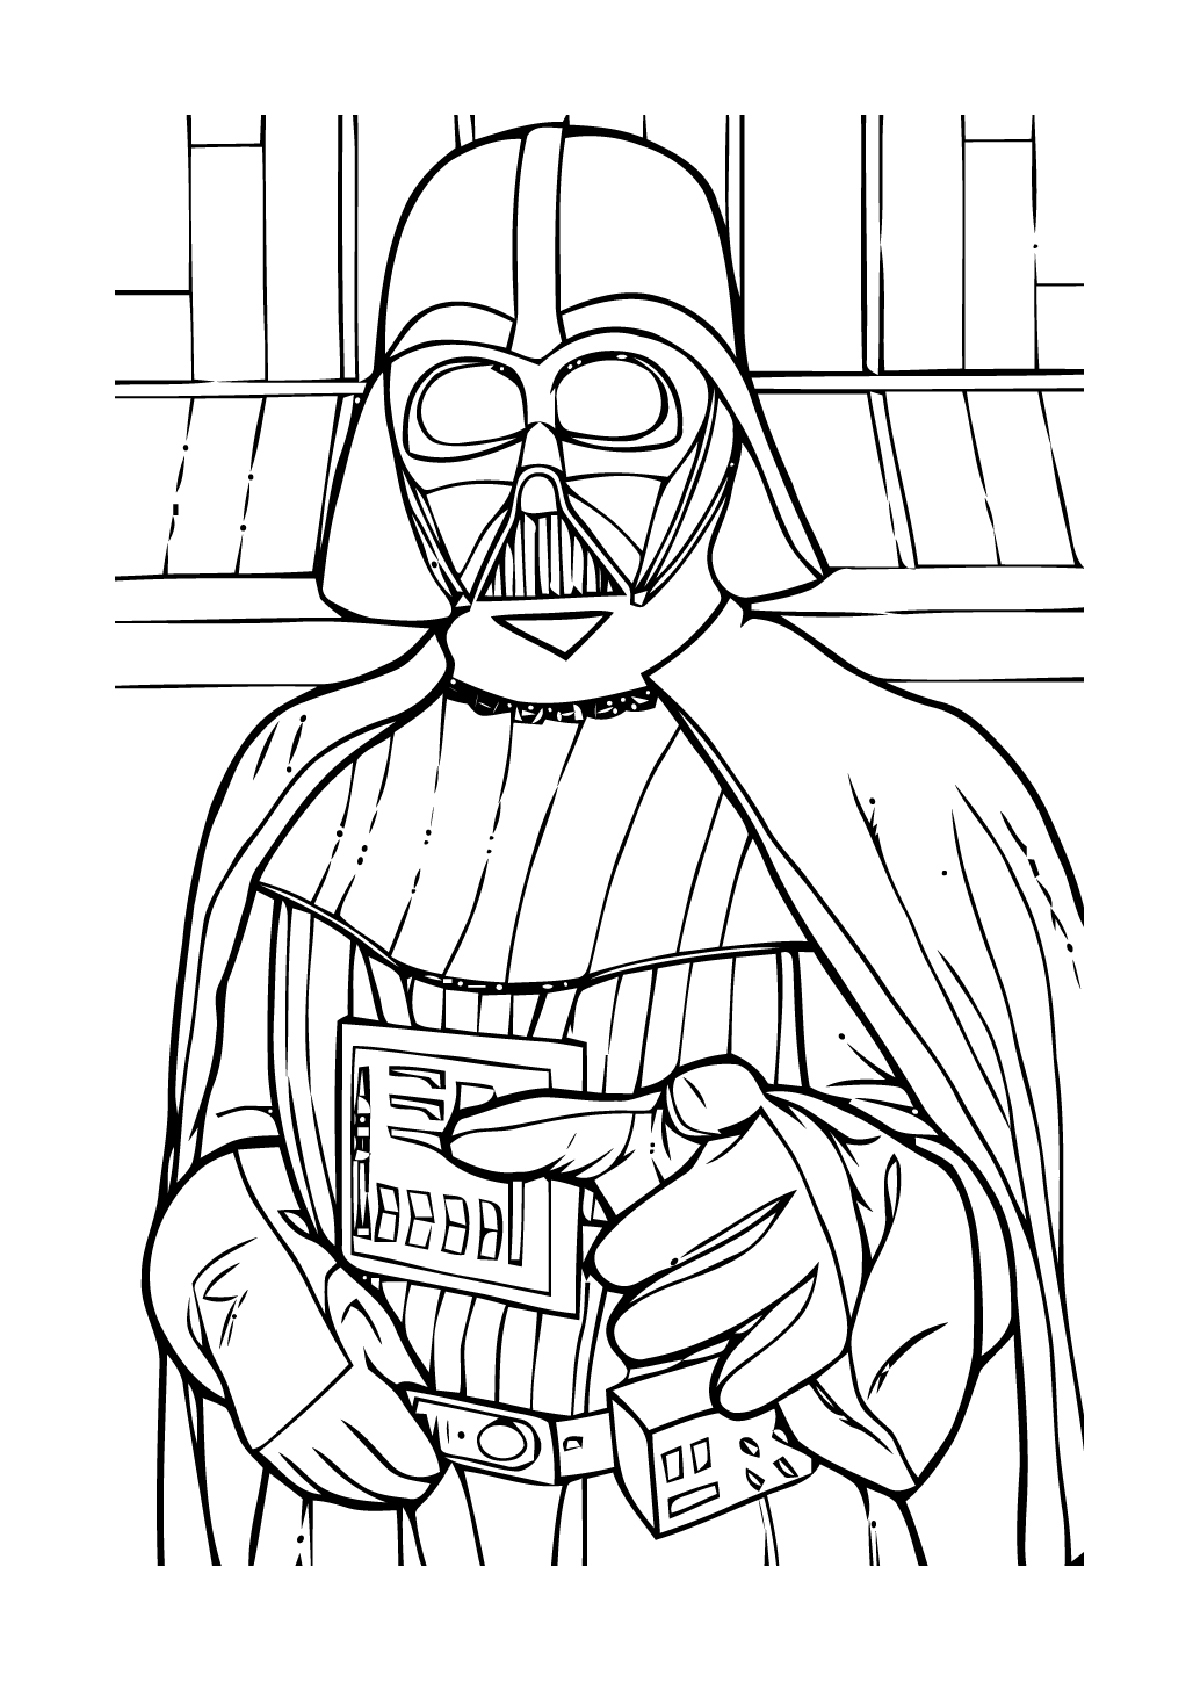 Coloriage De Star Wars 1 2 3 4 5 6 encequiconcerne Coloriage Star Wars A Imprimer